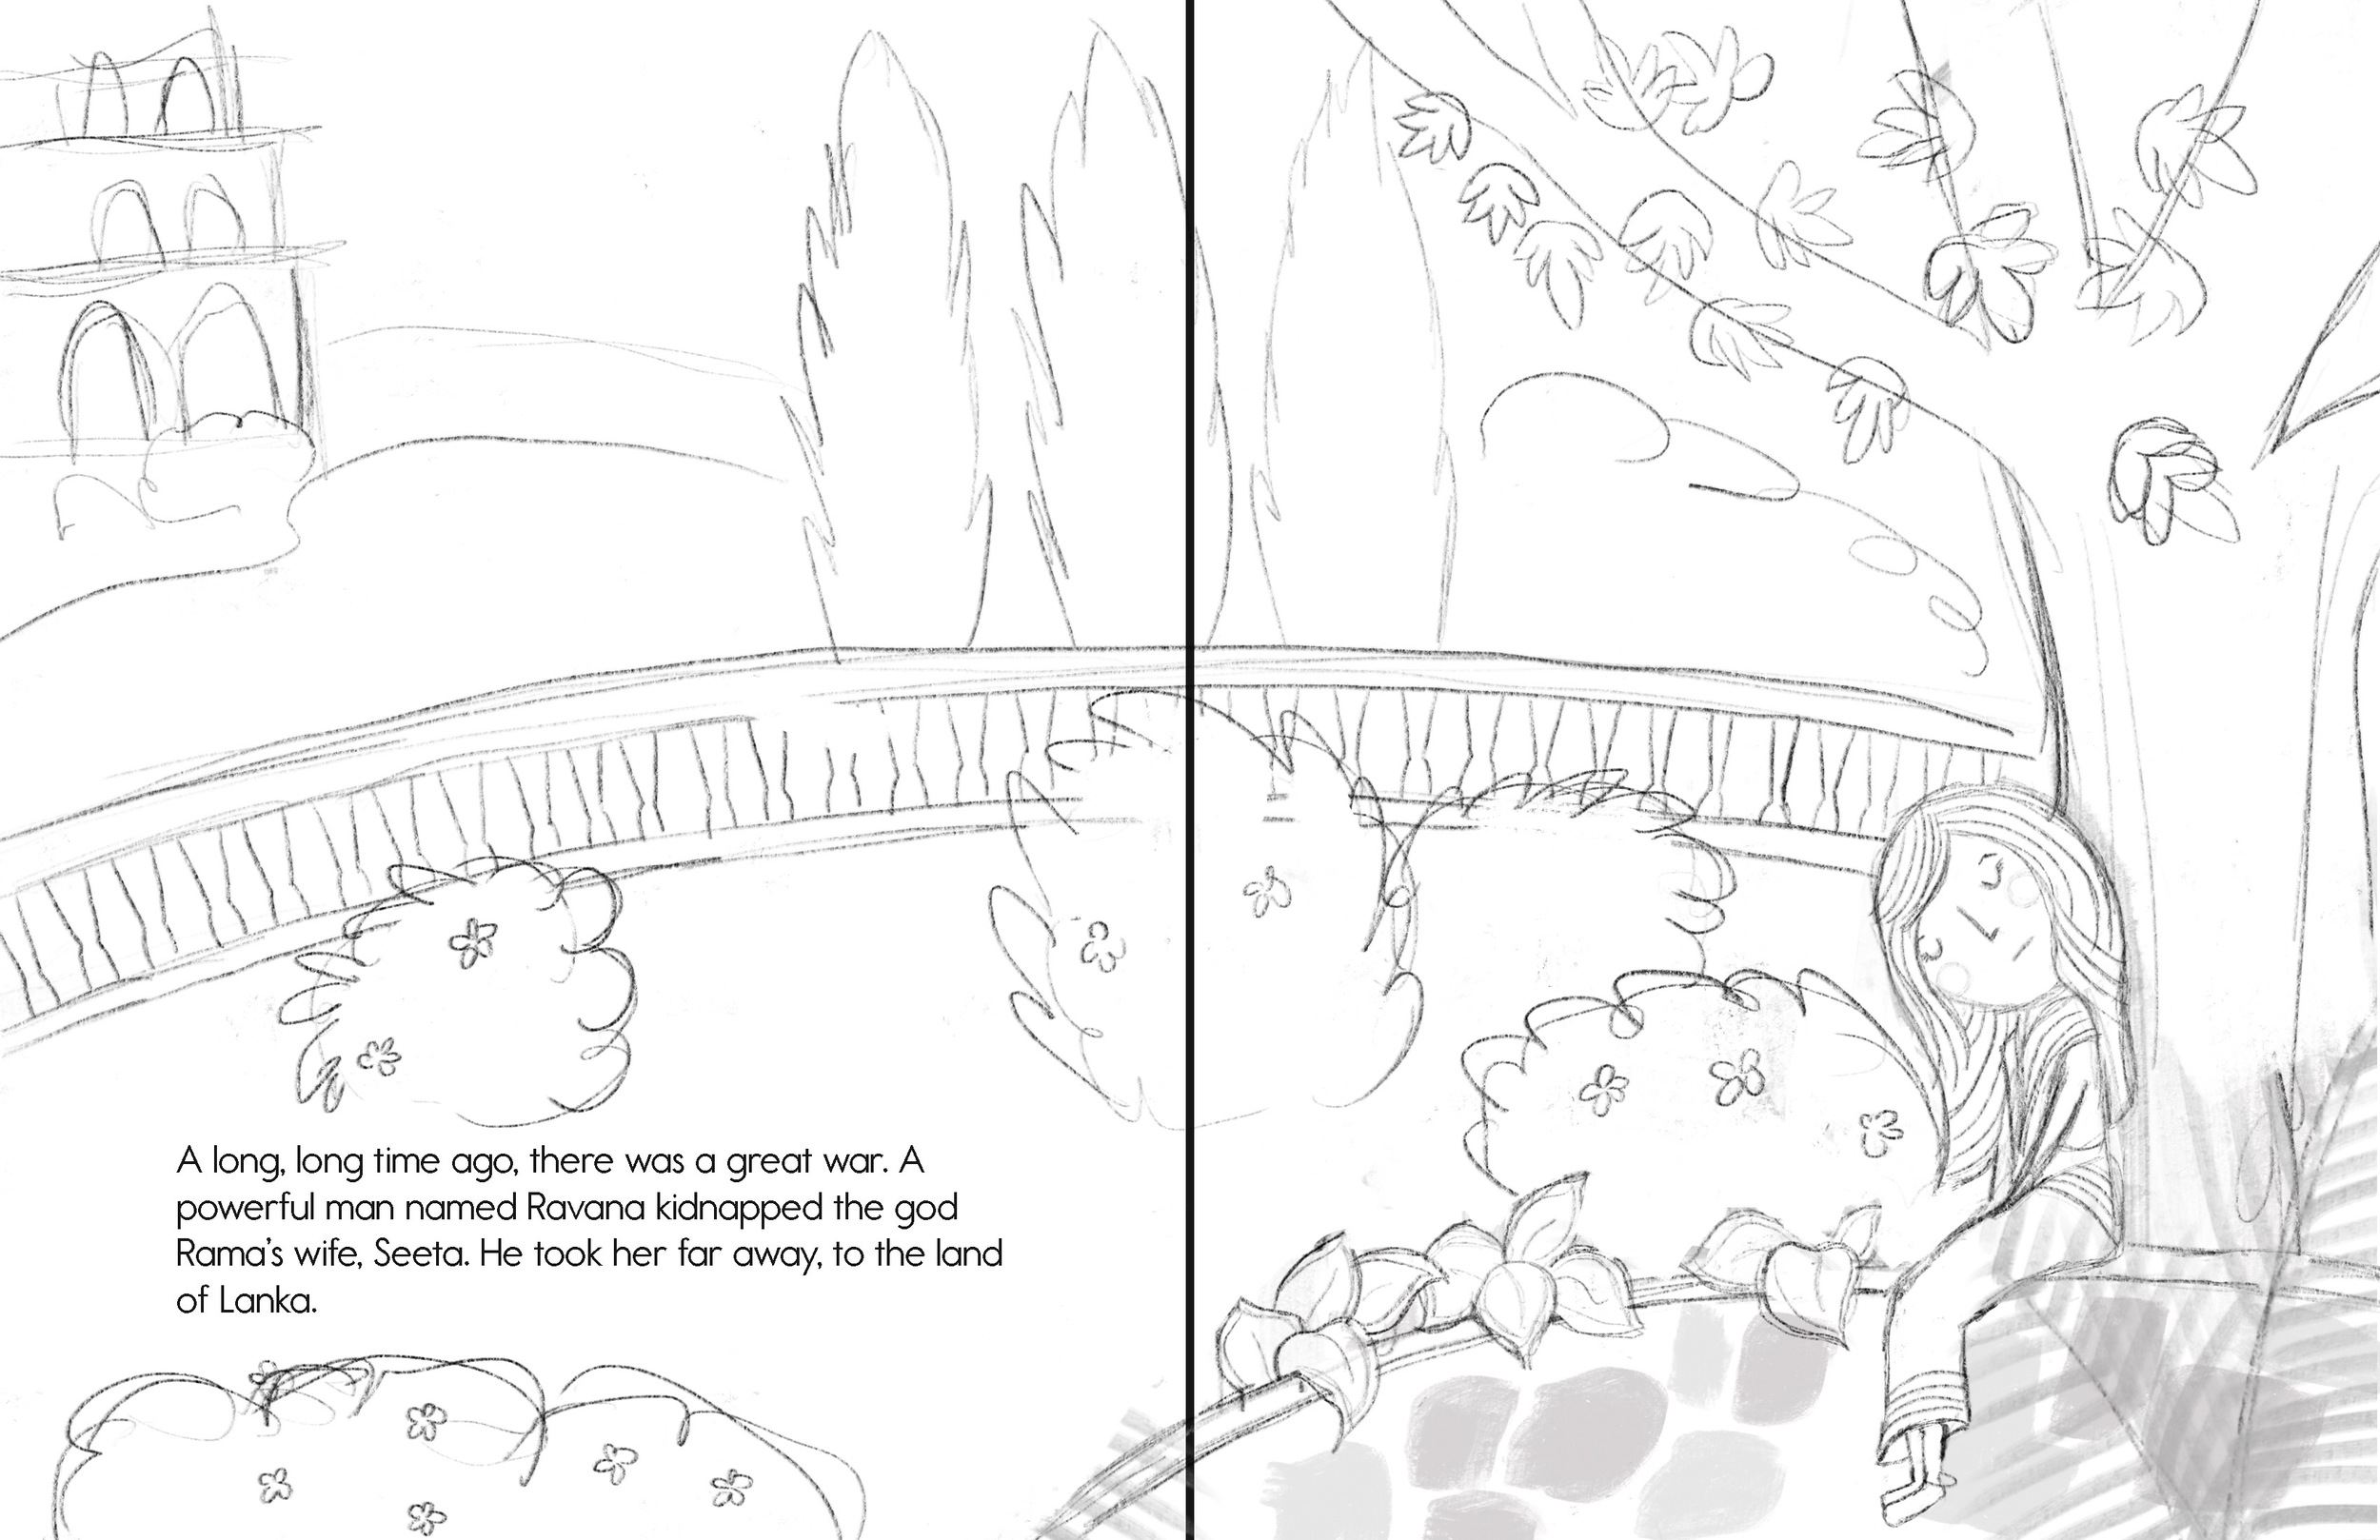 Sketch #2. The Client asked to take Seeta to place a little less secluded.